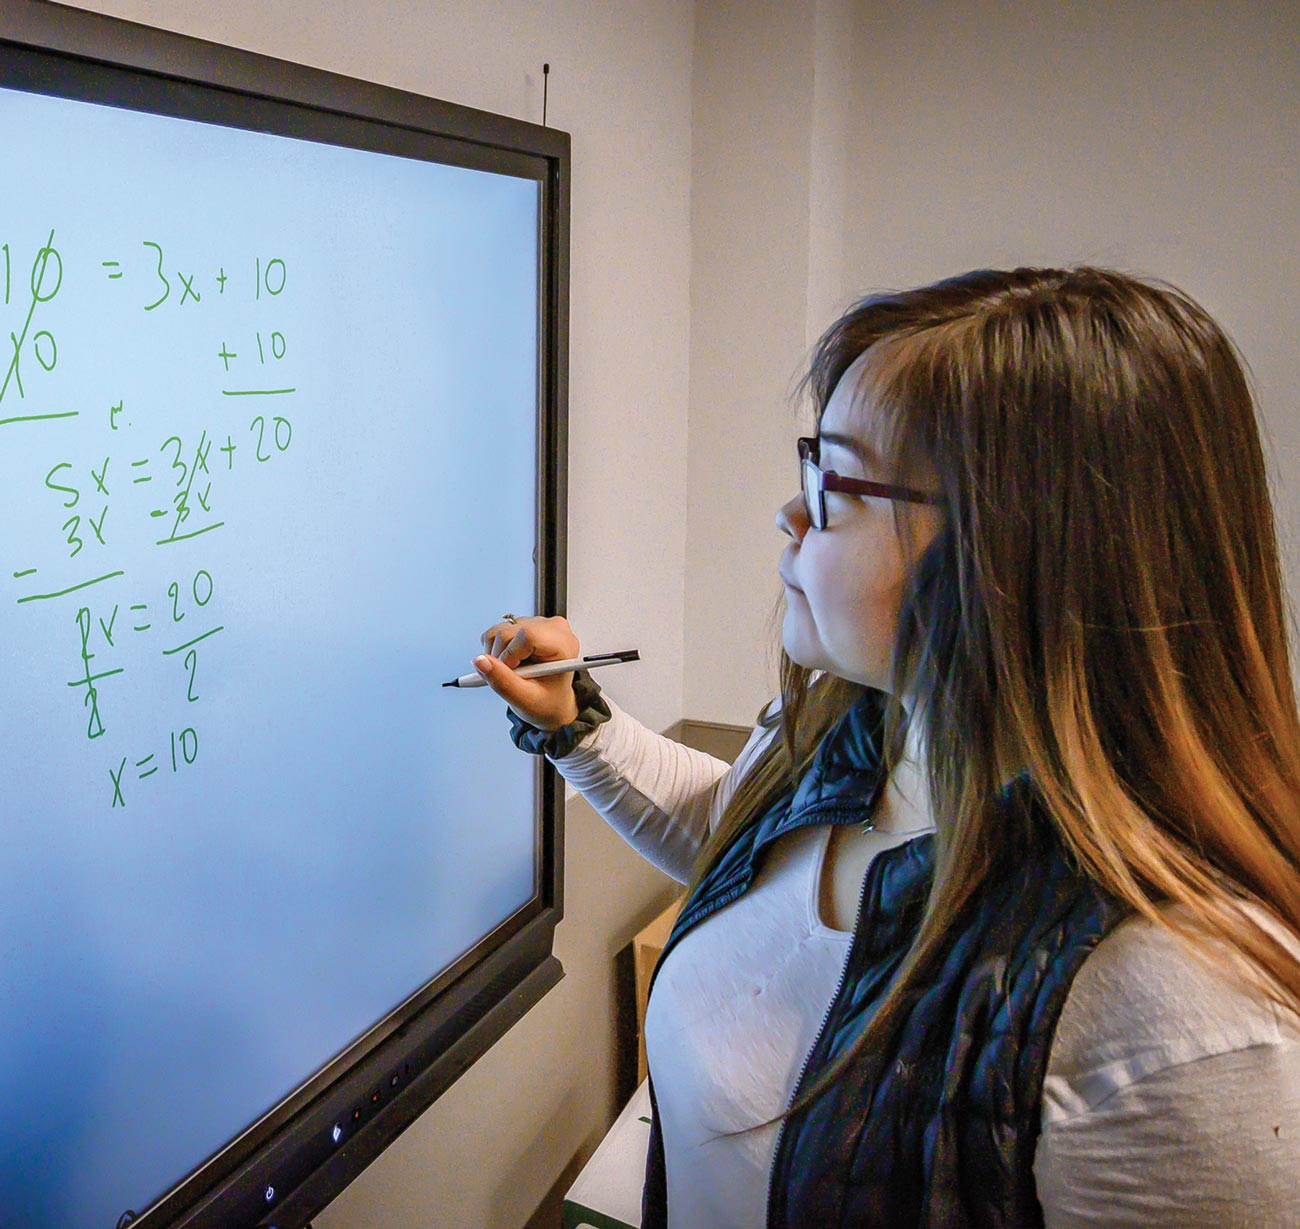 A student at the Kusilvak Career Academy uses technology in the form of an electronic whiteboard to facilitate learning